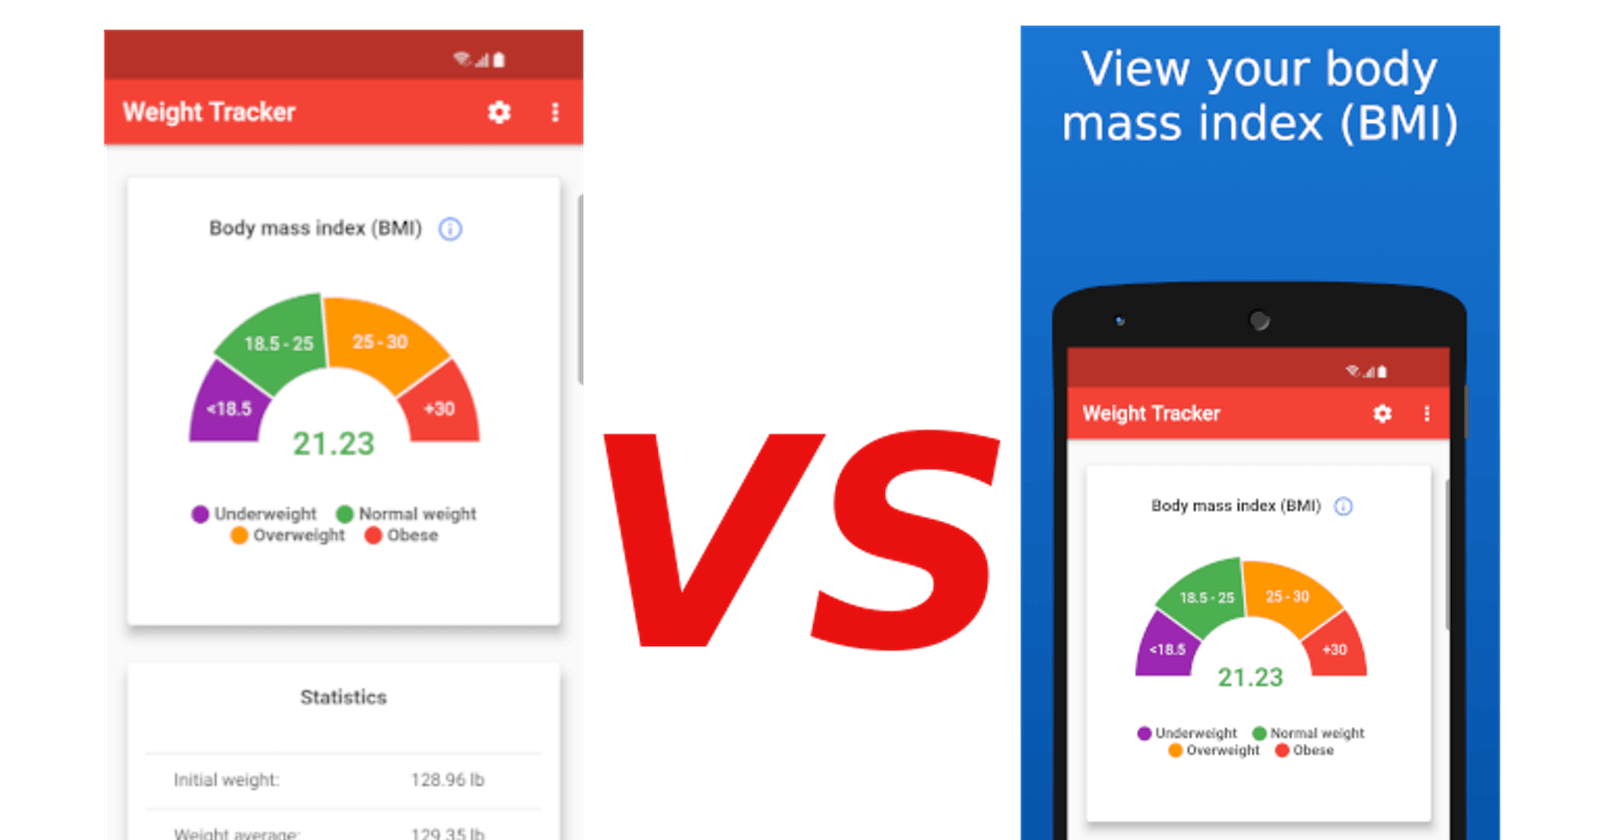 Measuring the impact of the app screenshots in Google Play and how it affects the overall downloads amount